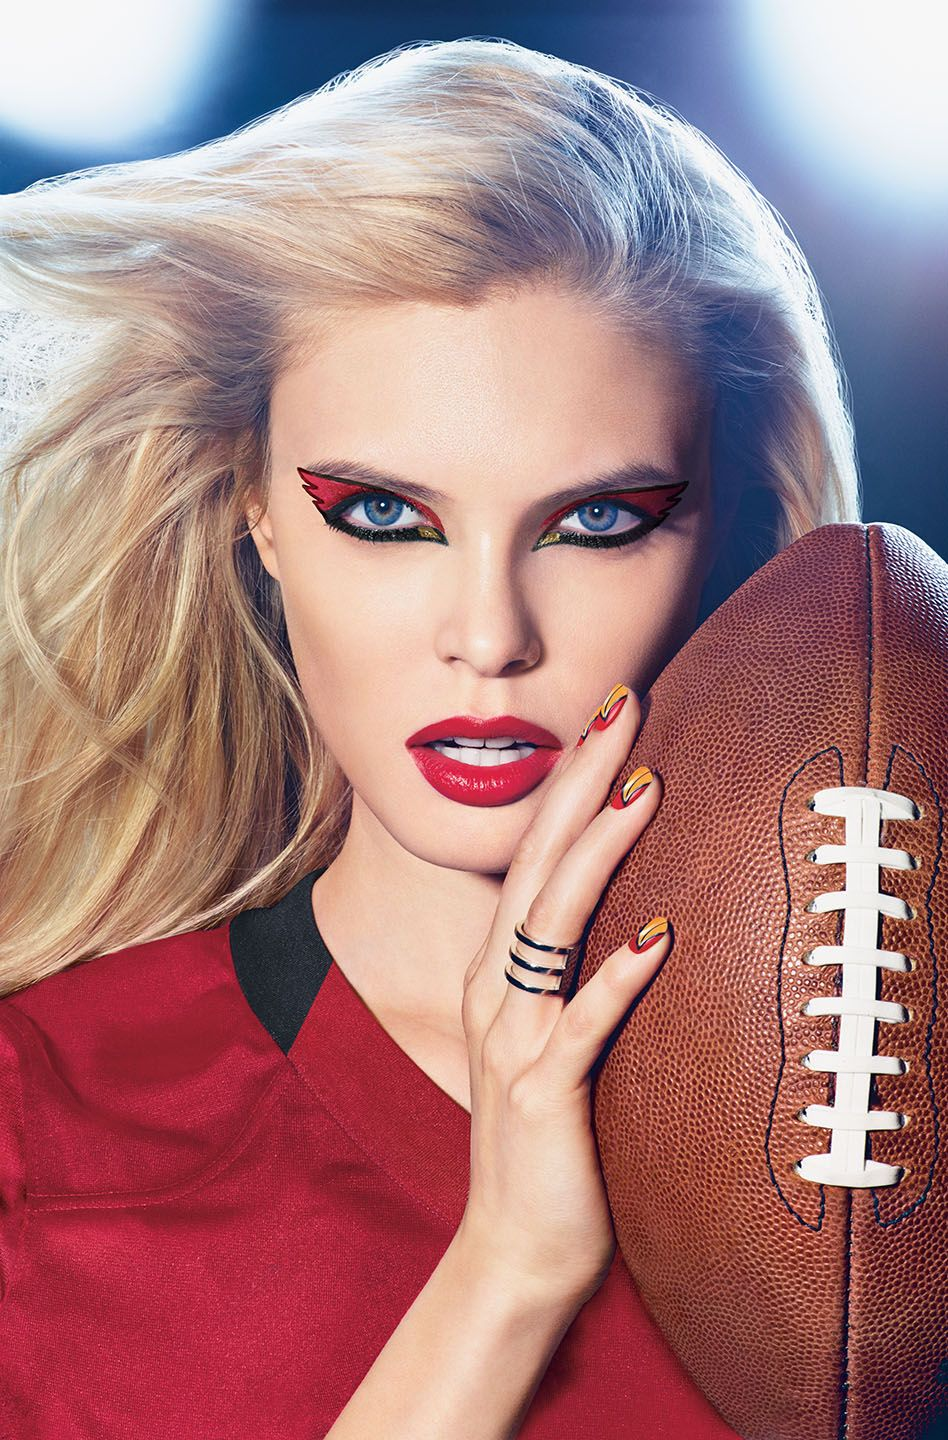 ARIZONA CARDINALS fans, get your Covergirl GAMEFACE on